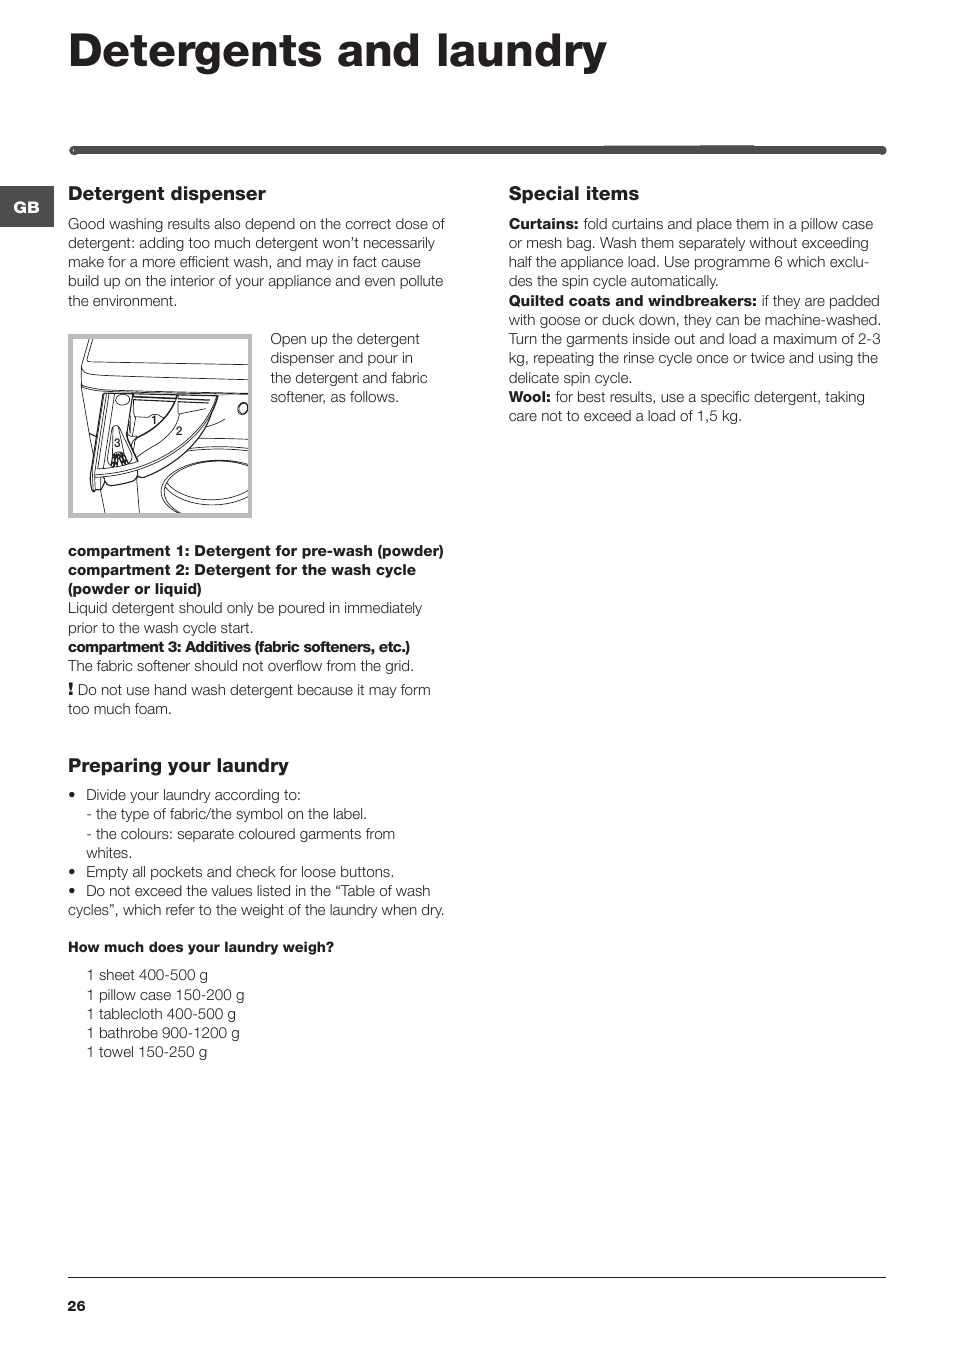 Indesit washing machine symbols image collections symbol and detergents and laundry indesit iwde 127 eu user manual page 26 detergents and laundry indesit iwde fandeluxe Choice Image